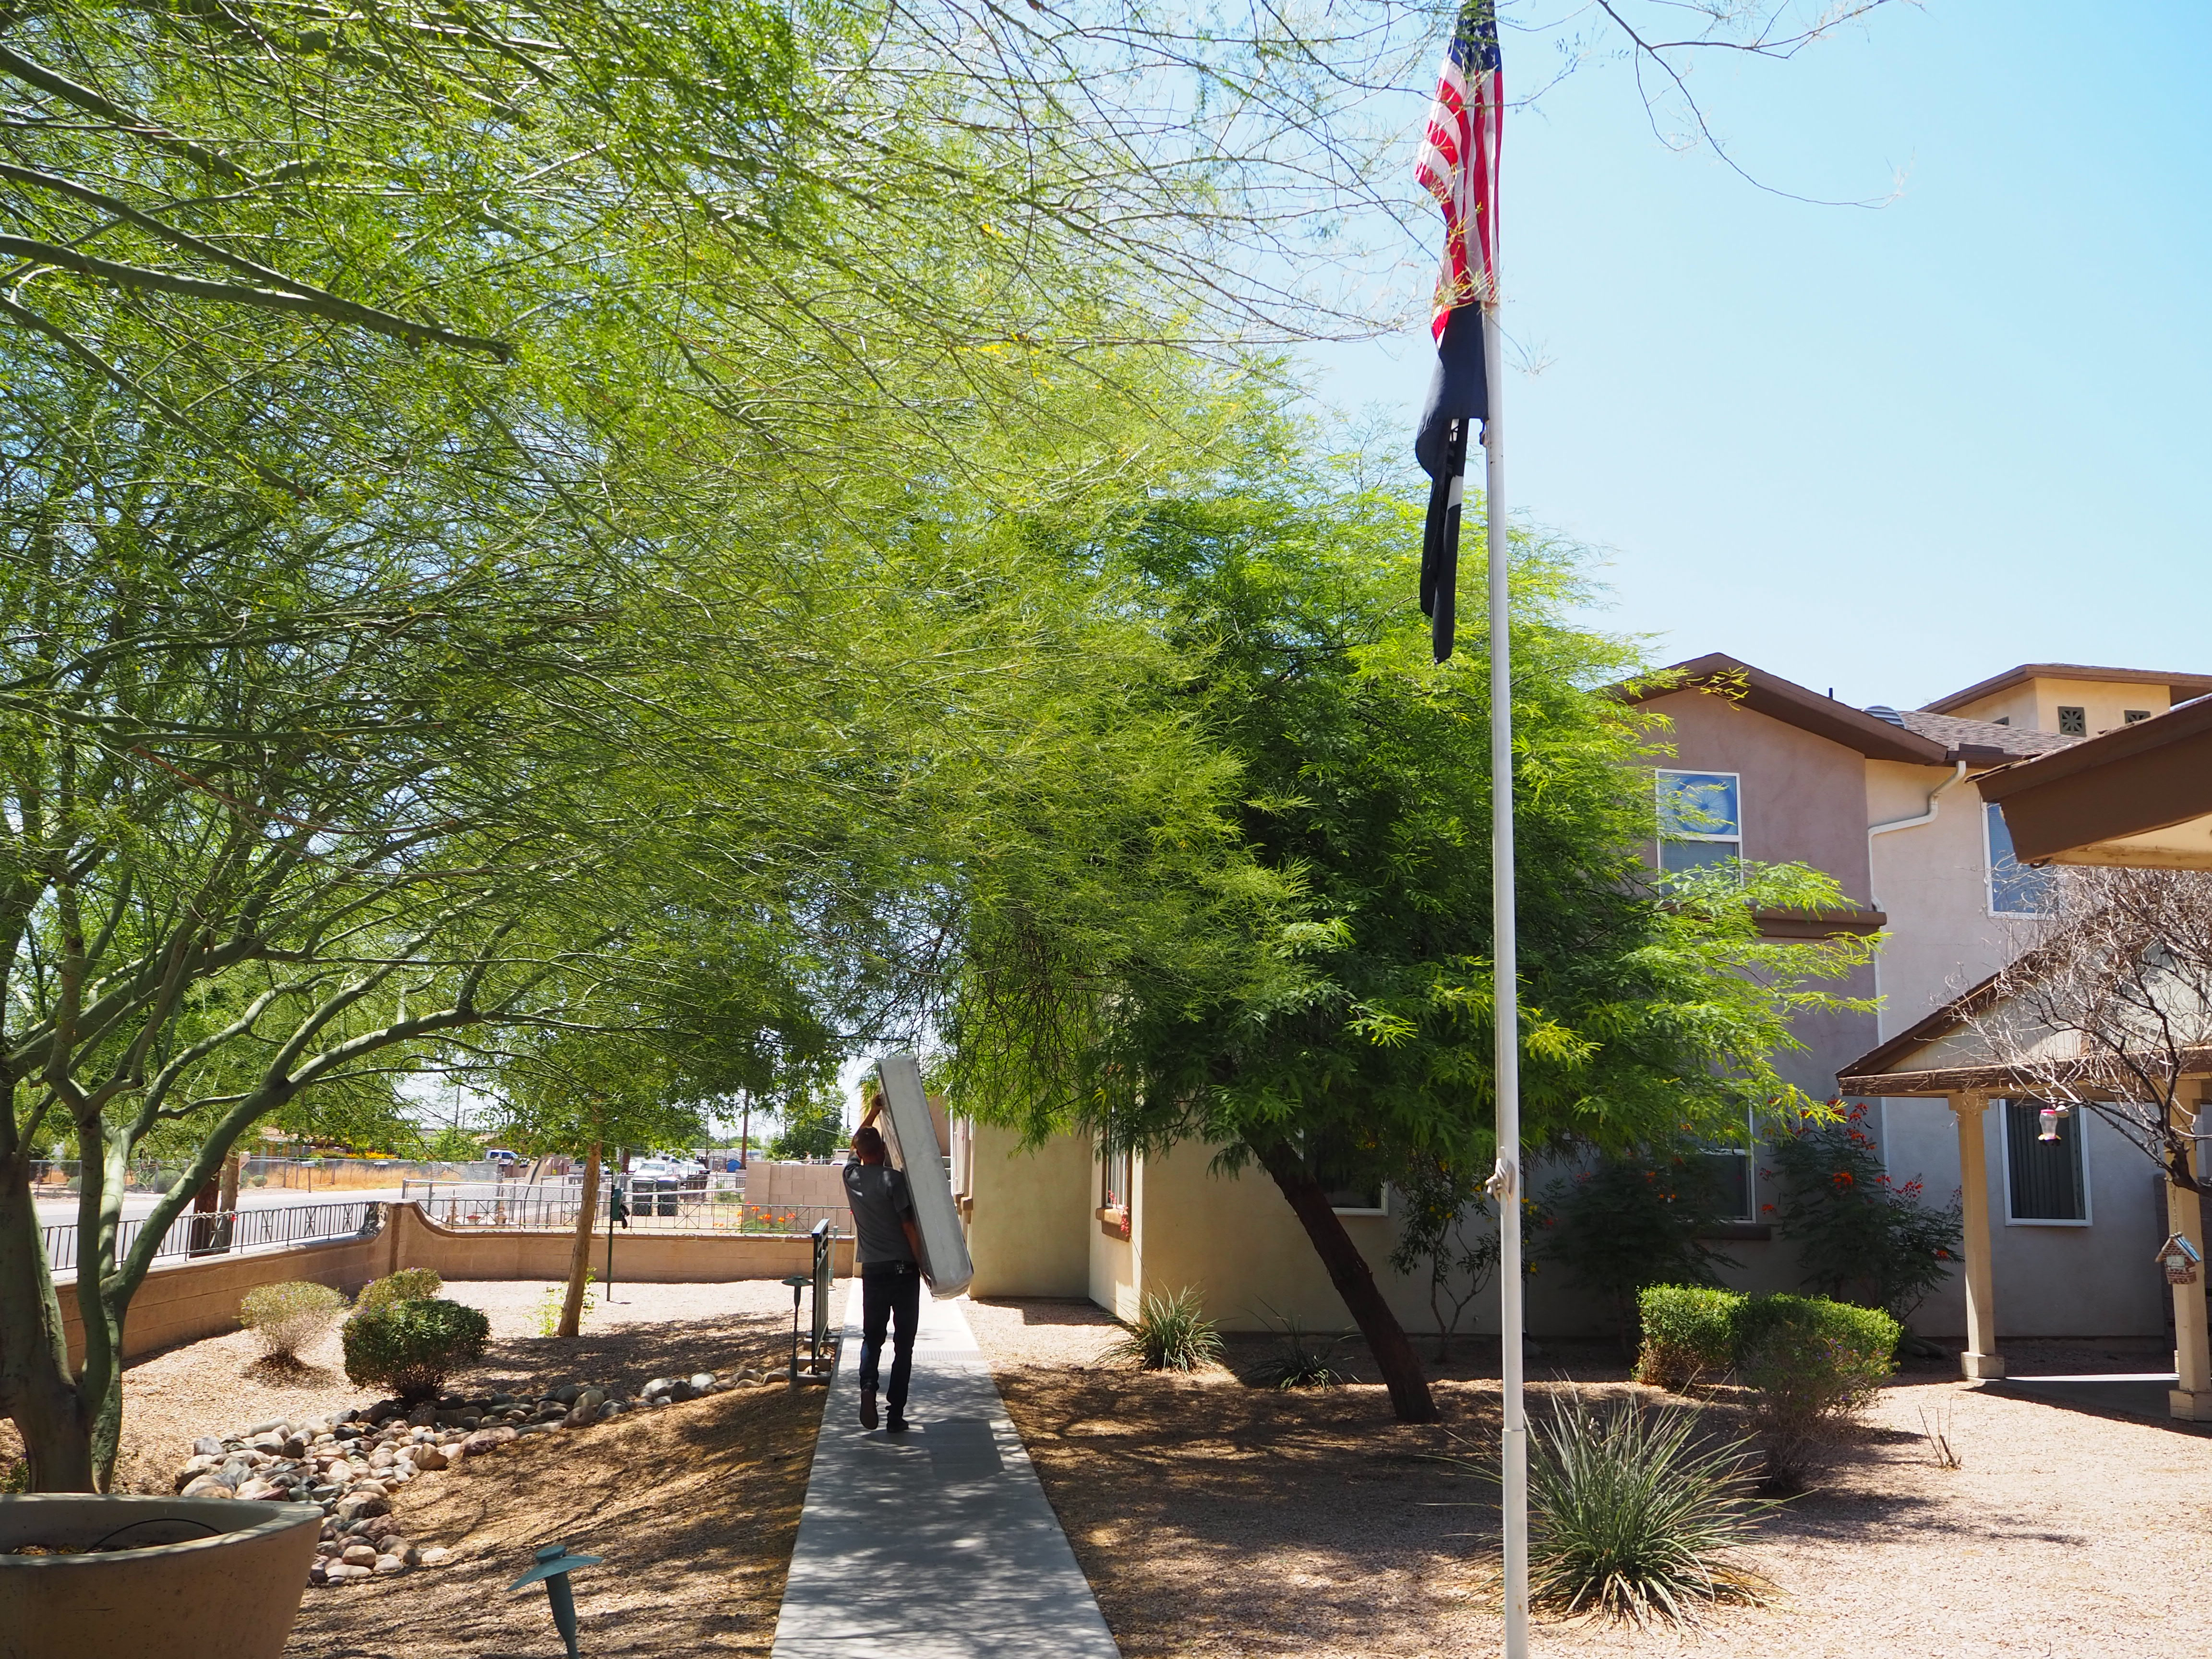 Moving a veteran into permanent housing in Phoenix